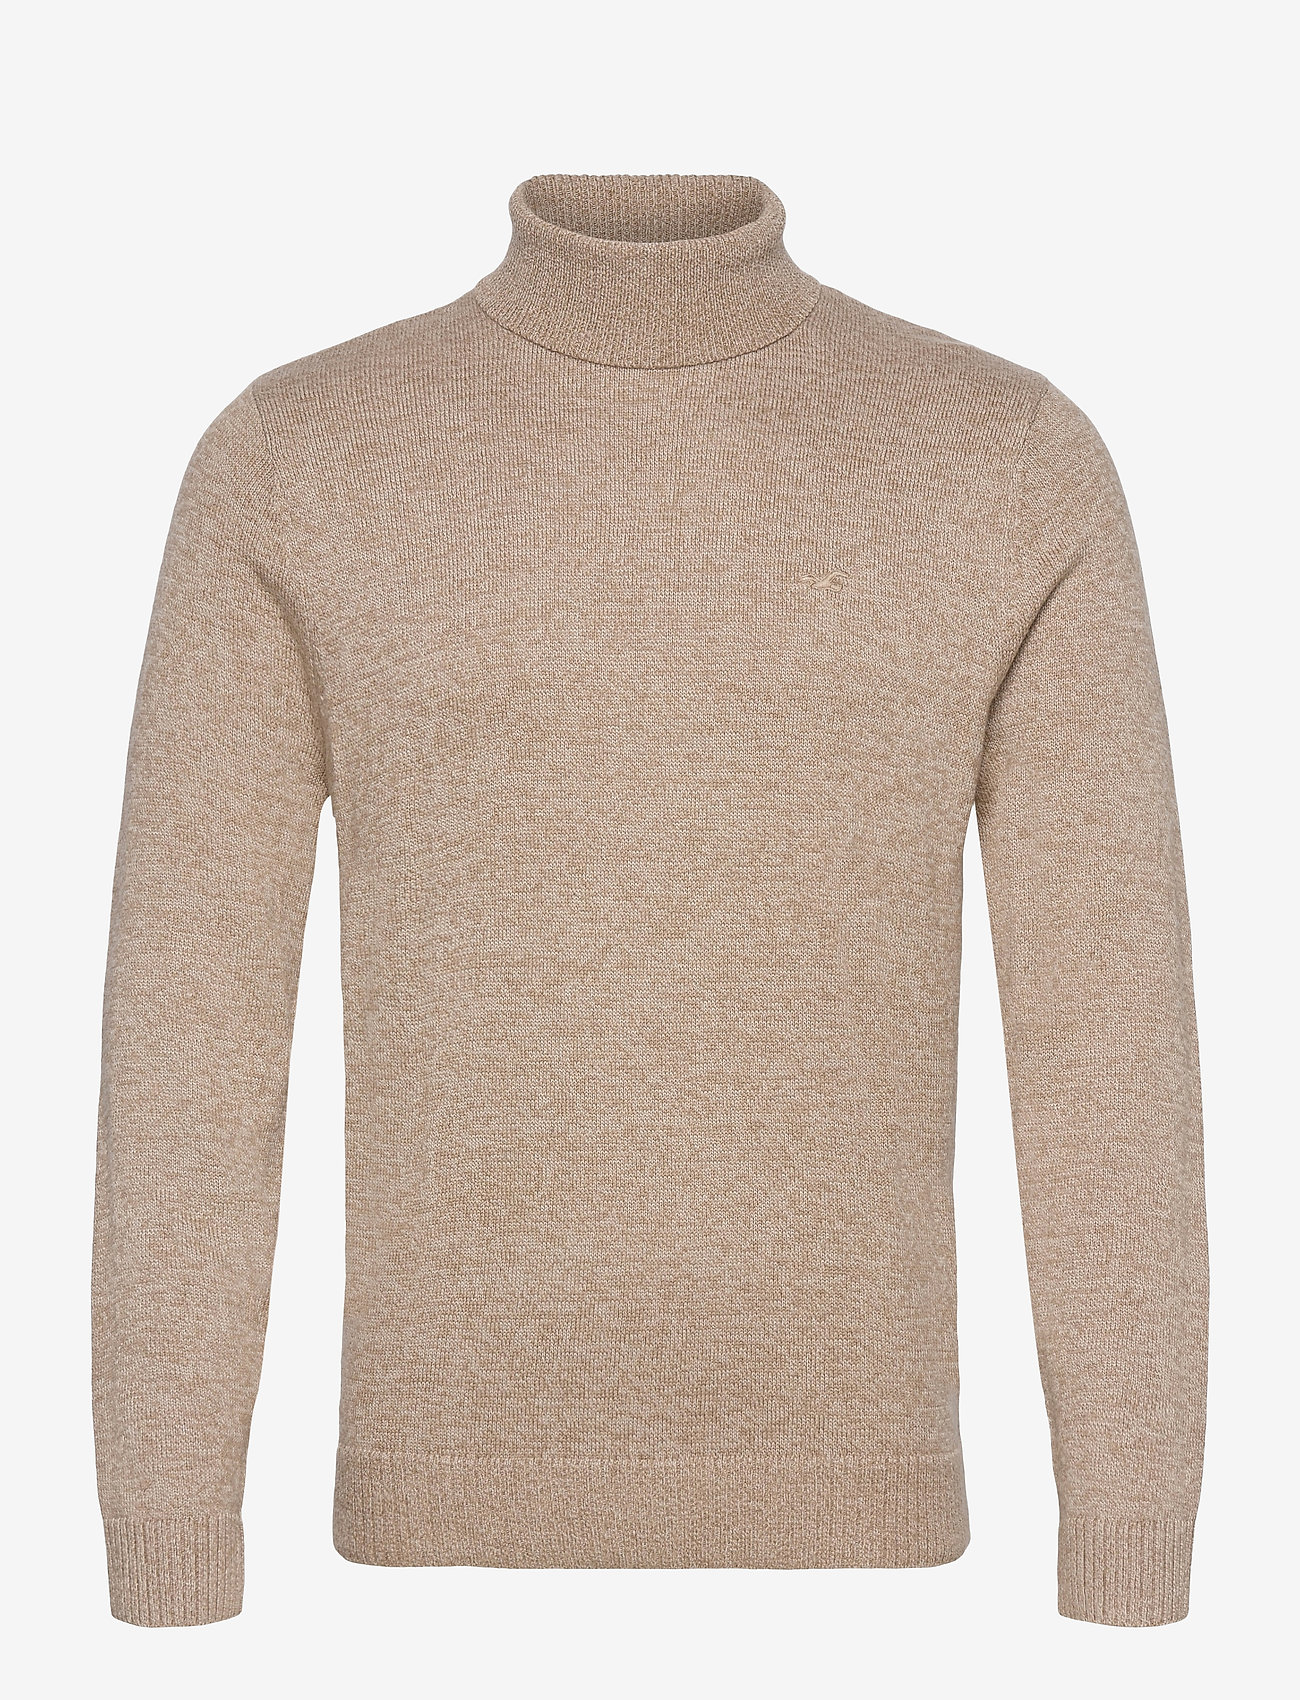 Hollister - HCo. GUYS SWEATERS - tricots basiques - light brown sd/texture - 0